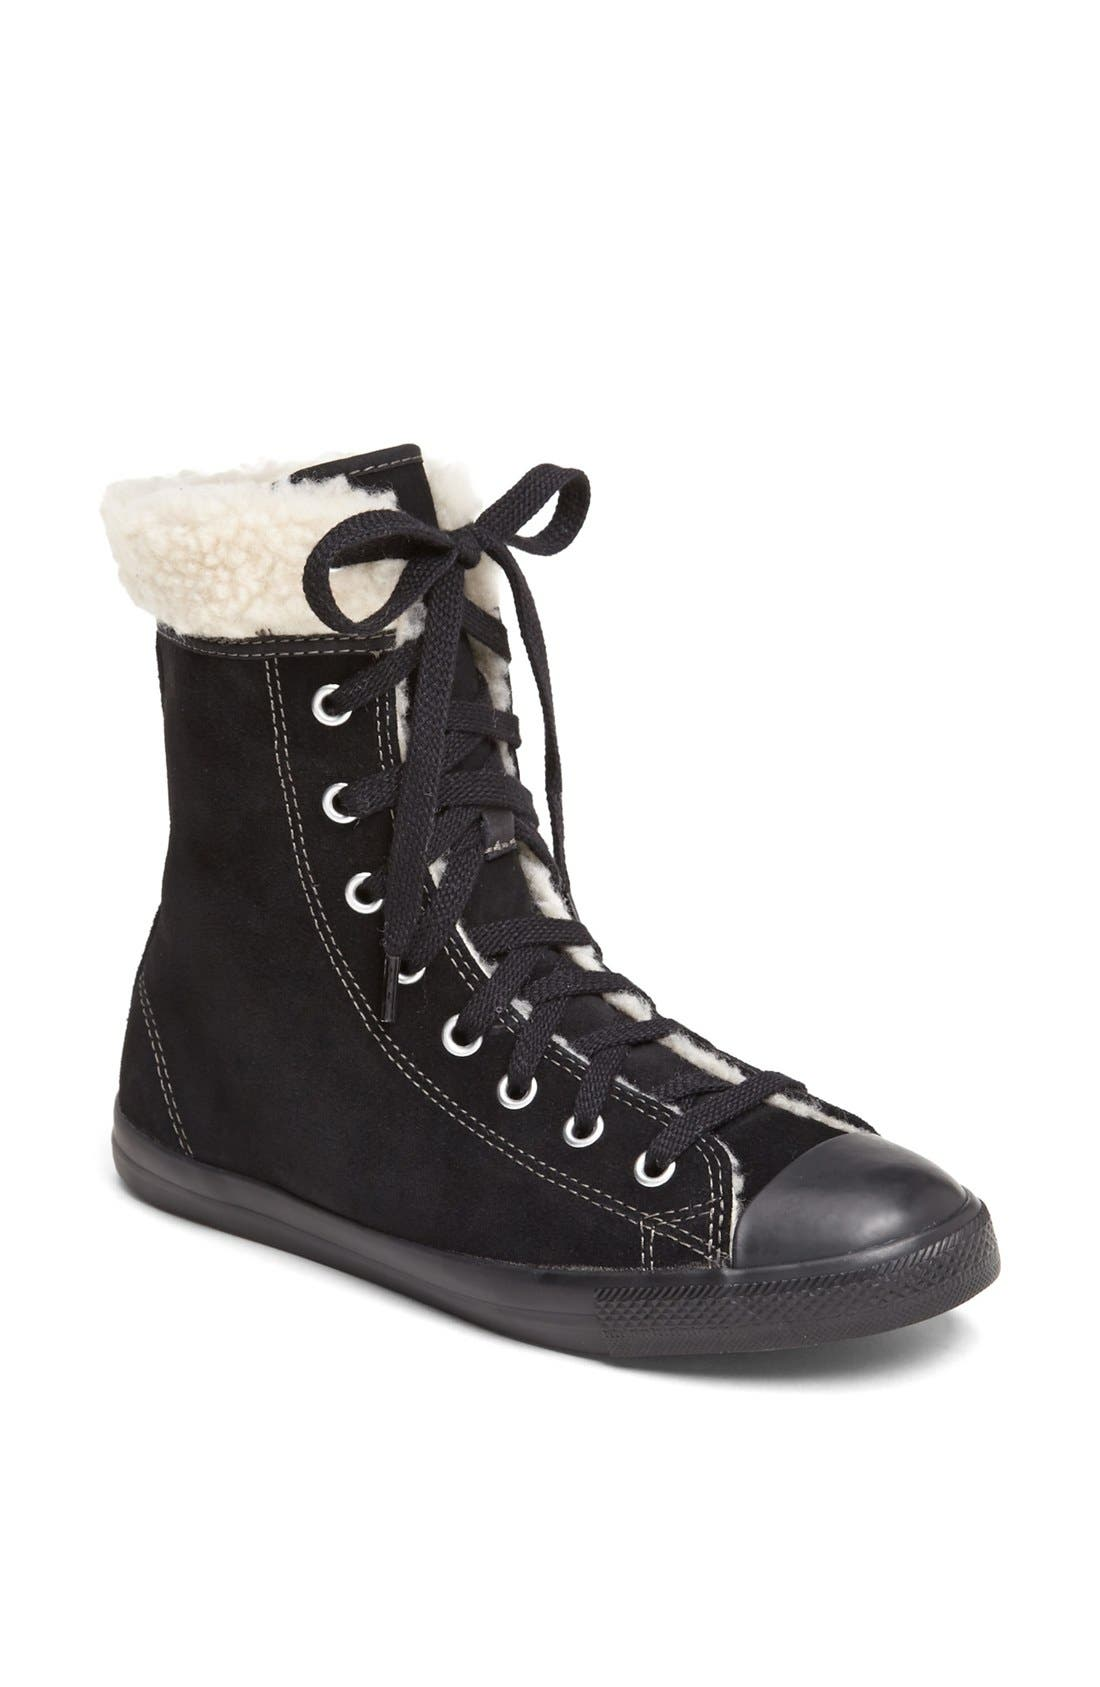 Alternate Image 1 Selected - Converse Chuck Taylor® All Star®' Dainty' Suede High Top Sneaker (Women)